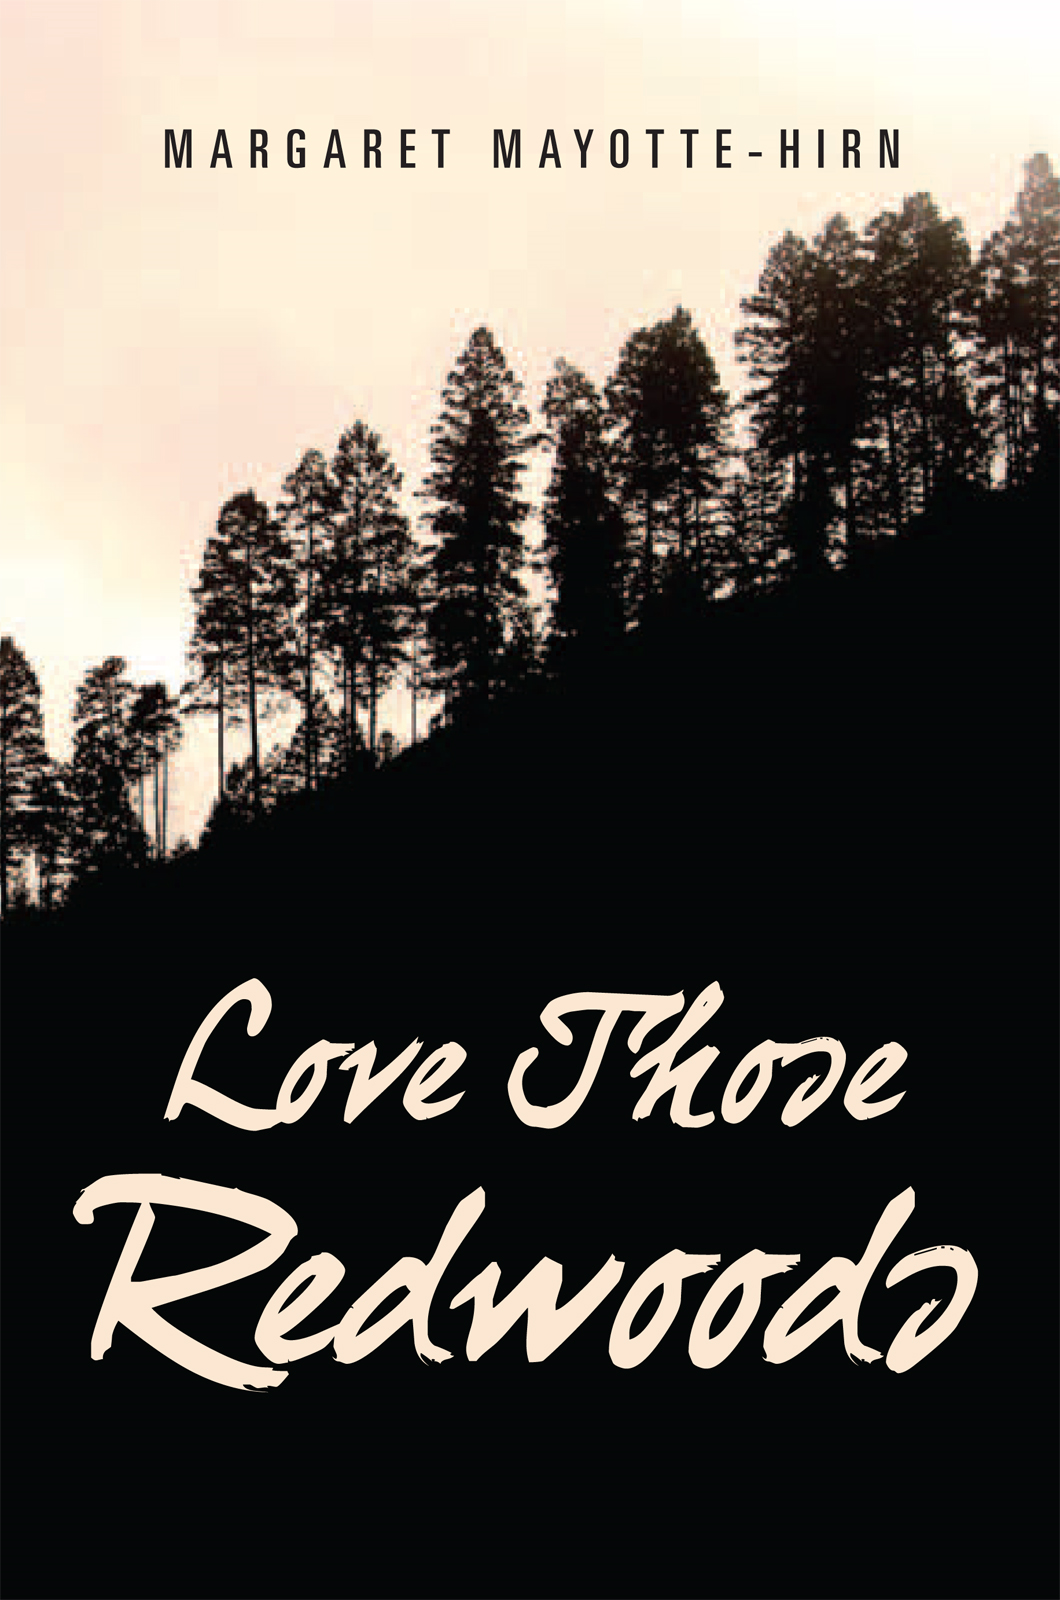 Love Those Redwoods